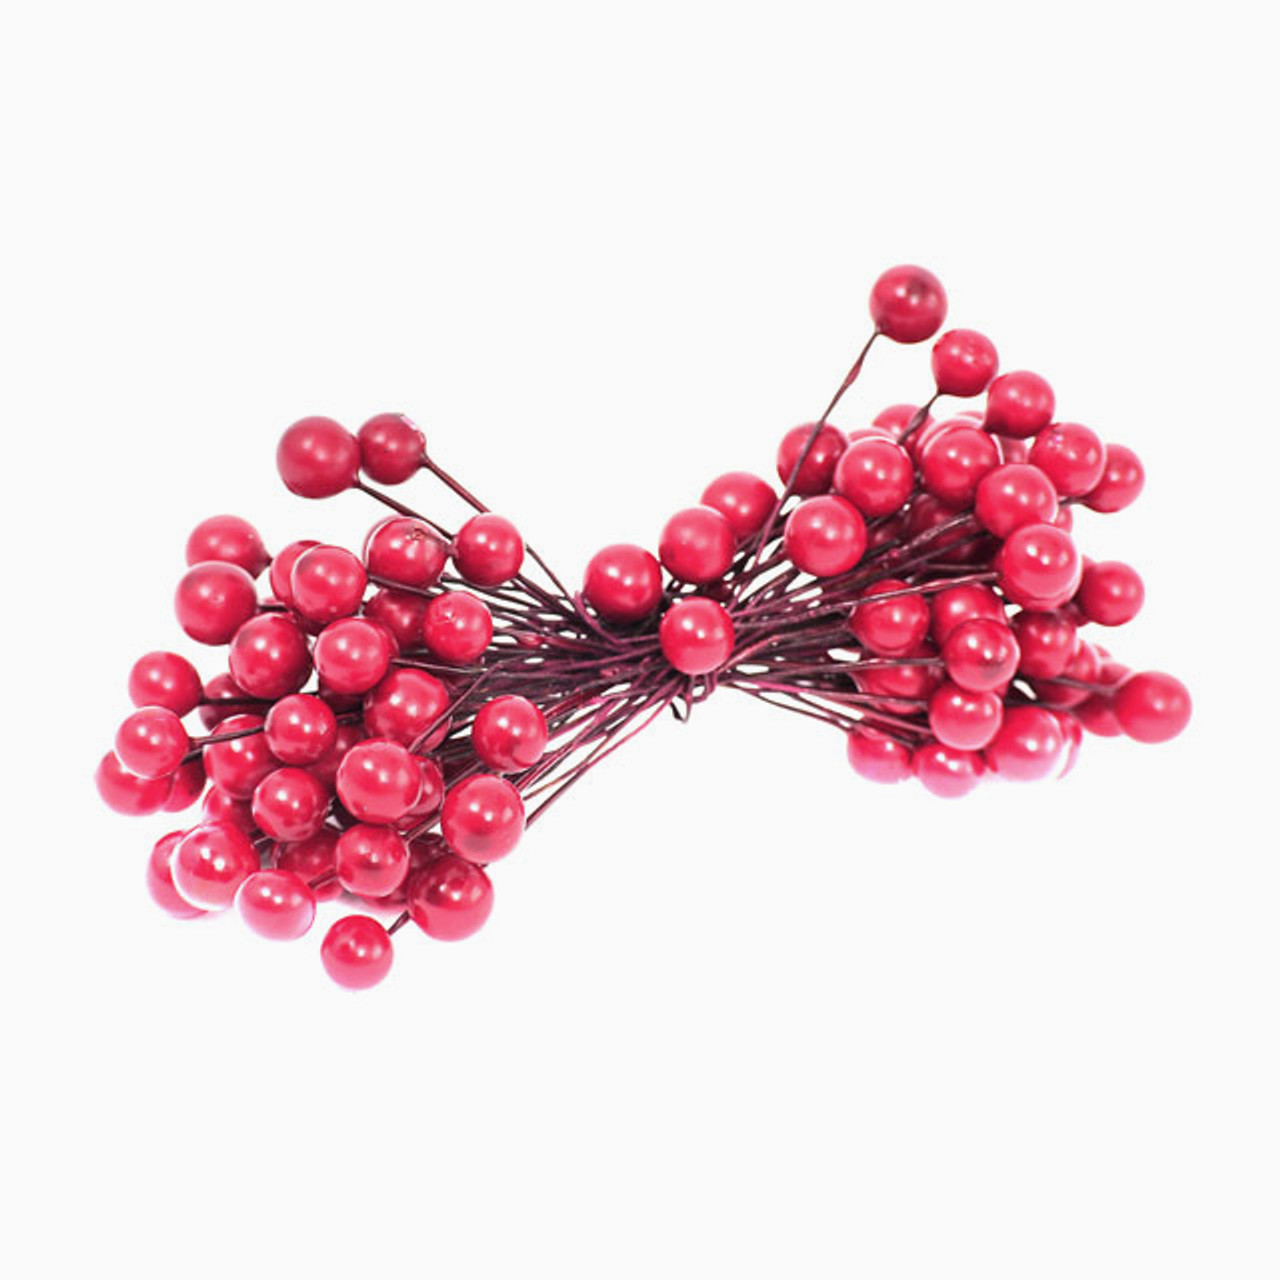 Floristrywarehouse Artificial Berry on Wire Red x 120